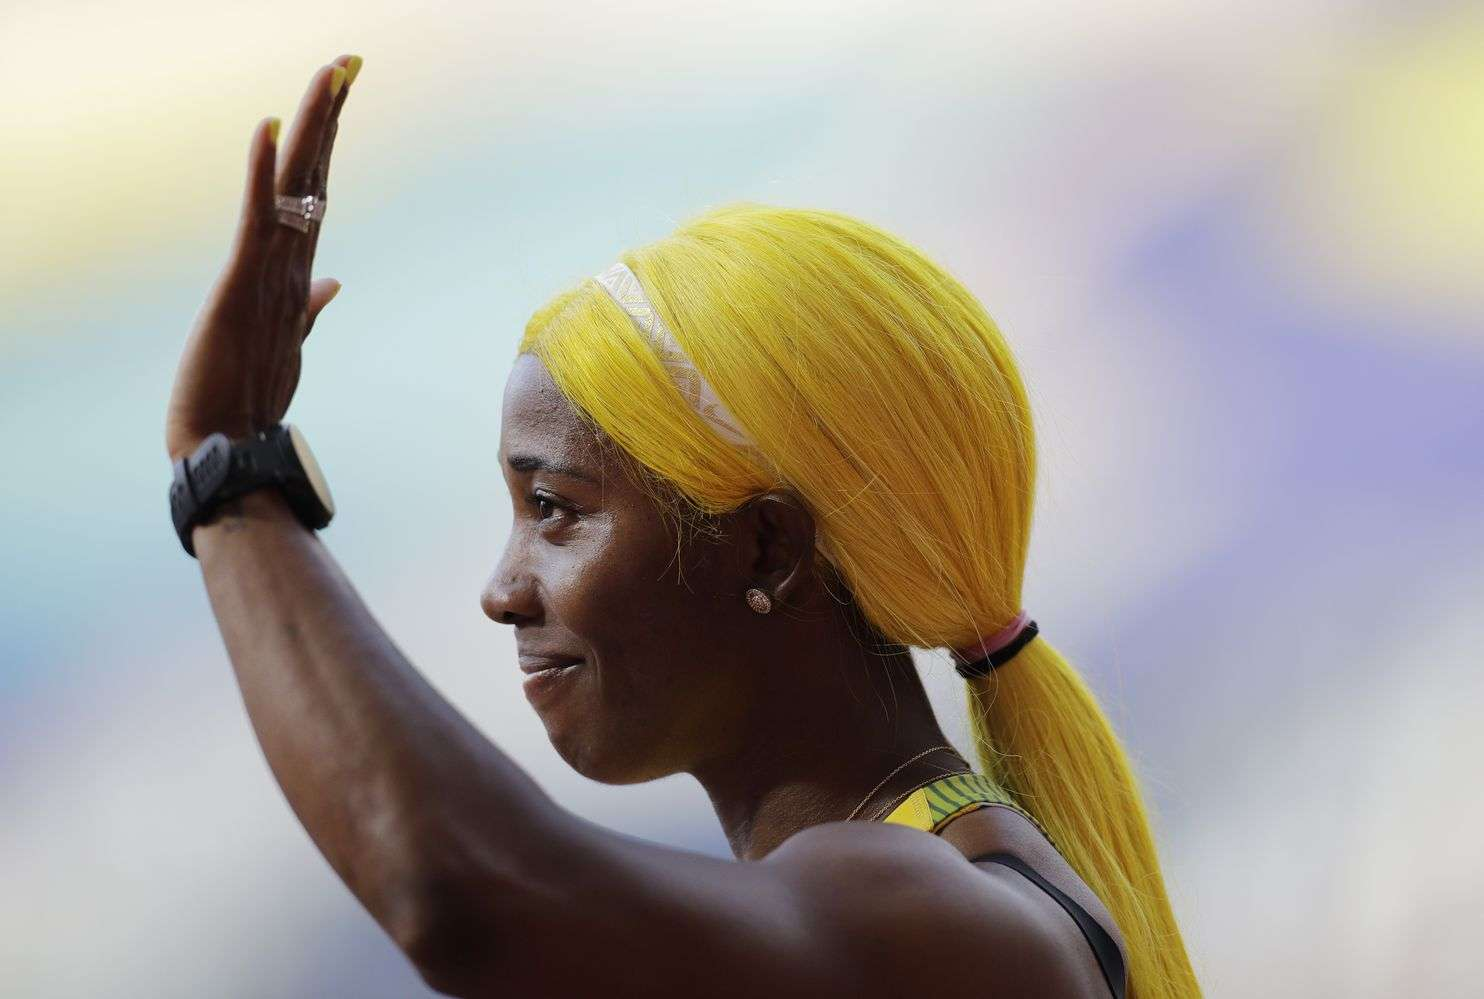 Sprint Queen, Fraser Pryce Among BBC 100 Most Influential & Inspiring Women For 2019